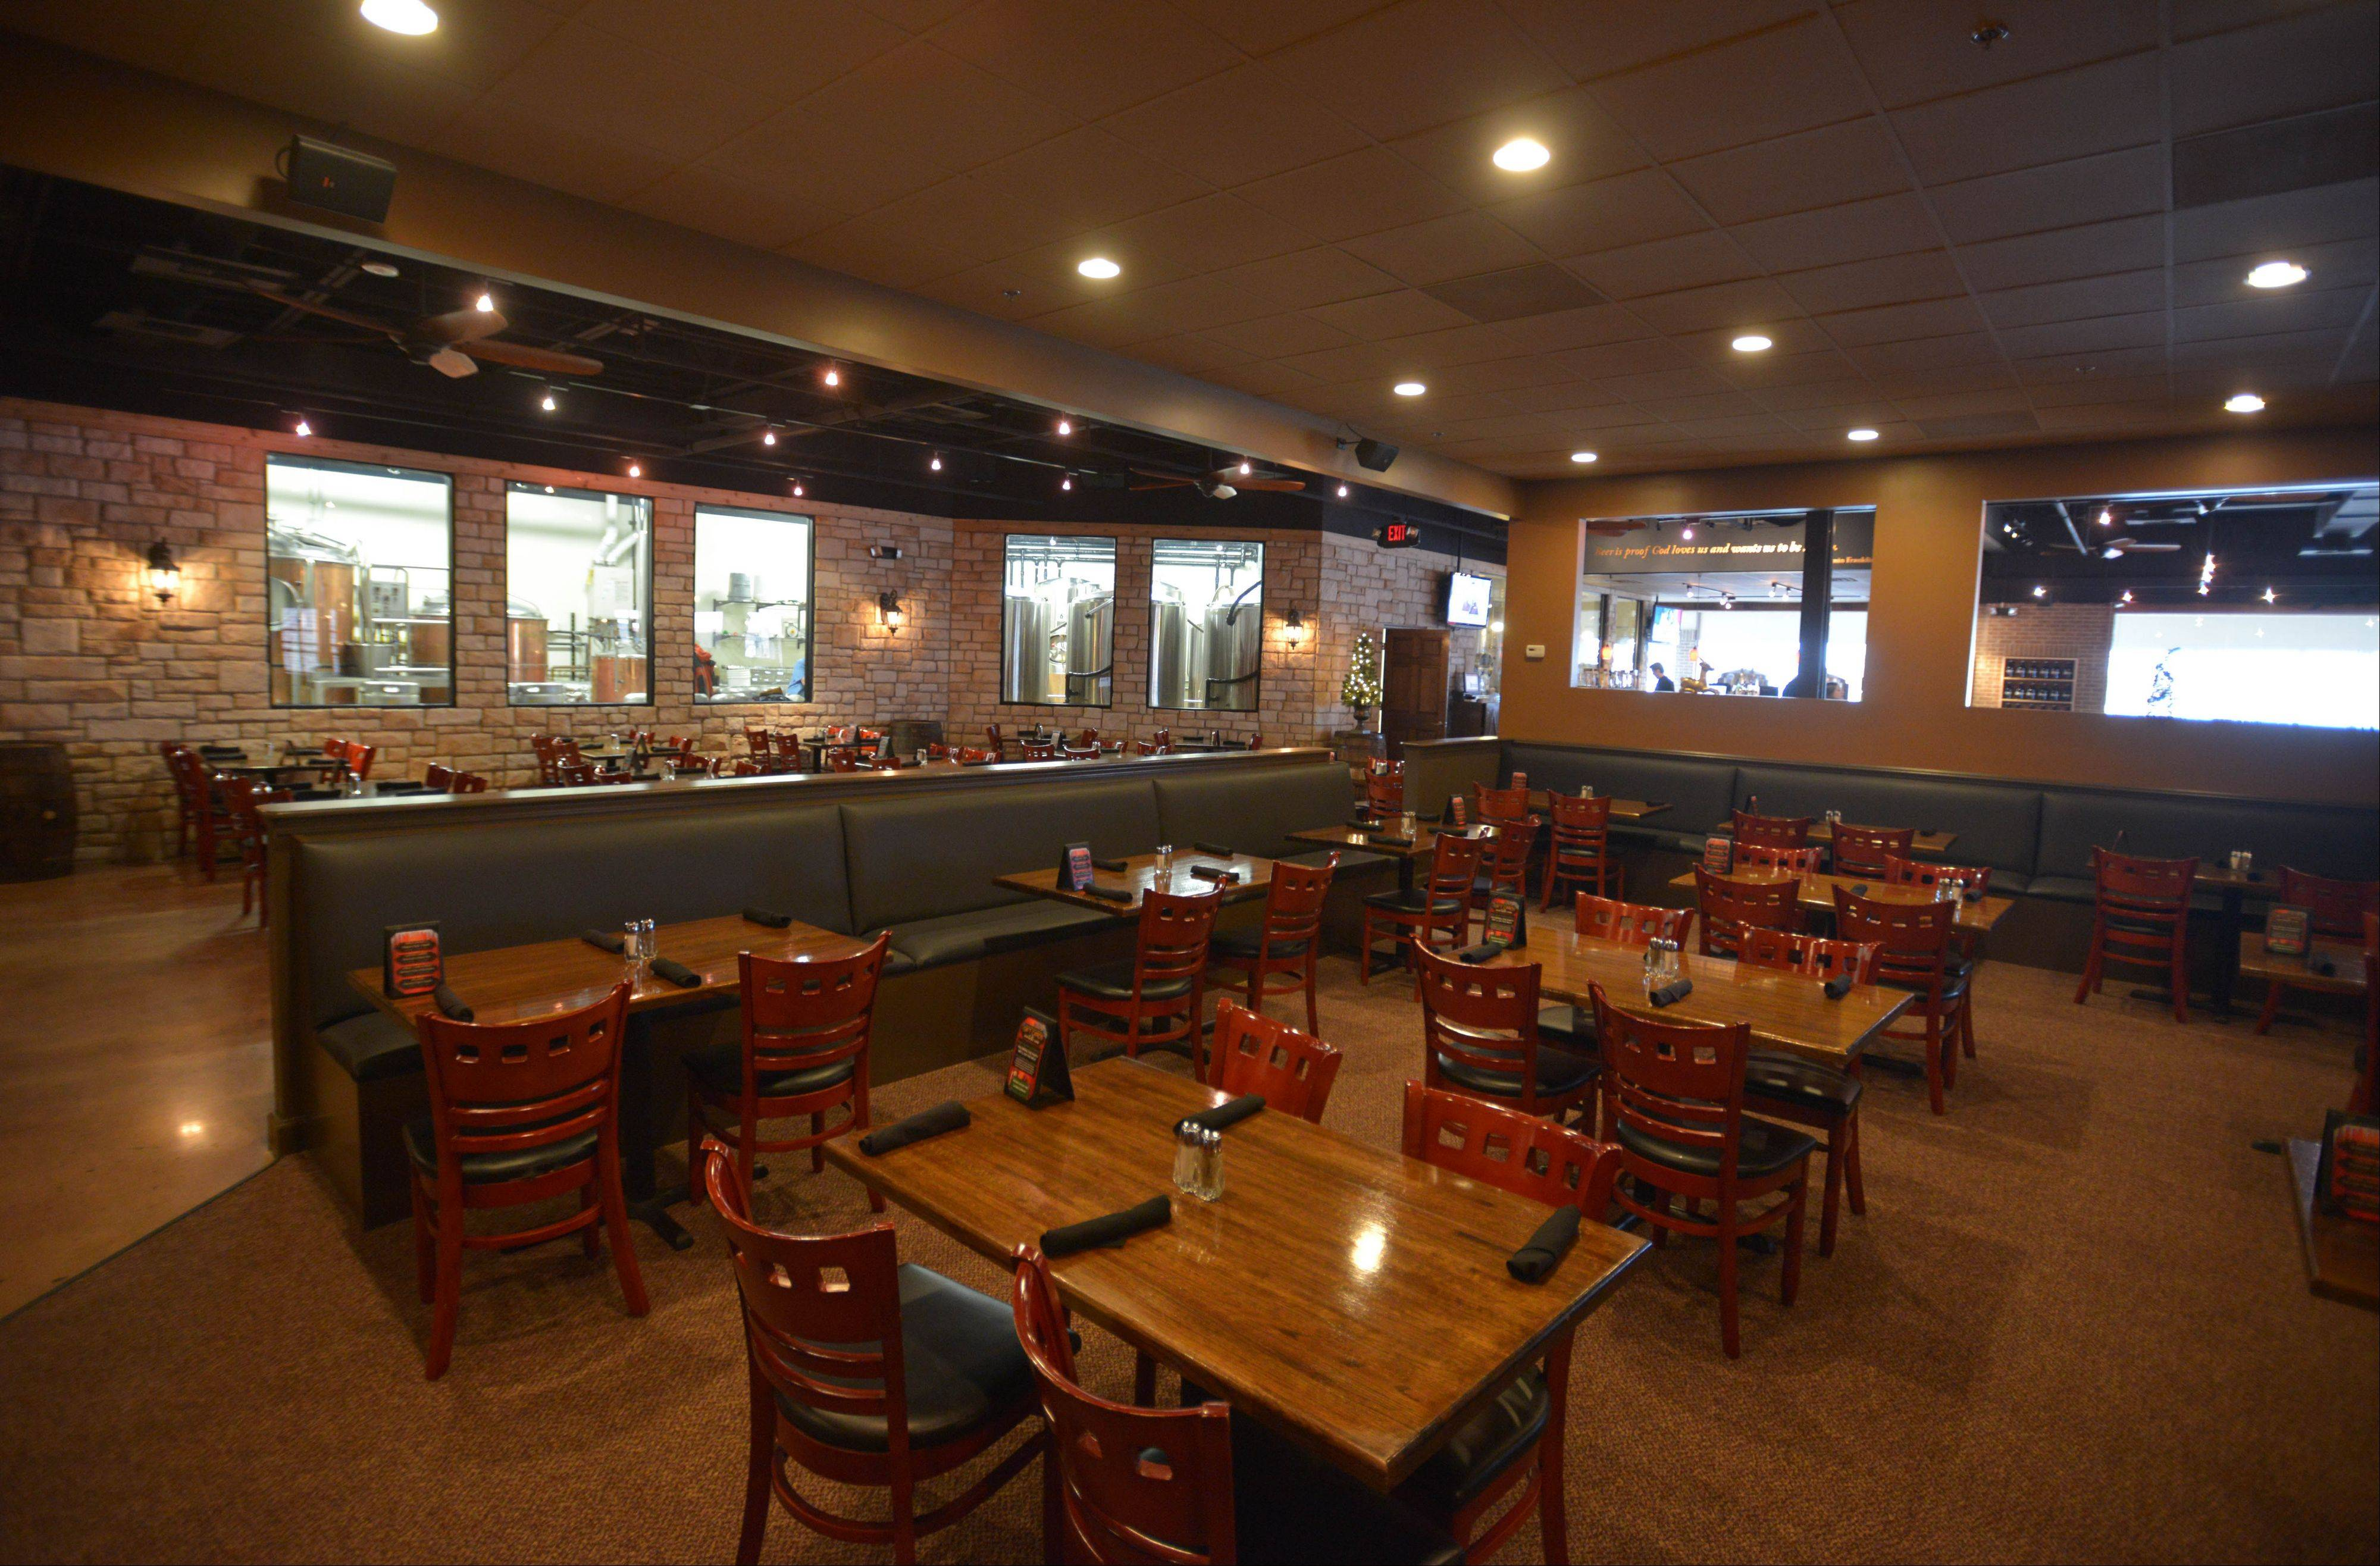 The dining room at Hopvine in Aurora is comfortable for gatherings with friends or dining with family.